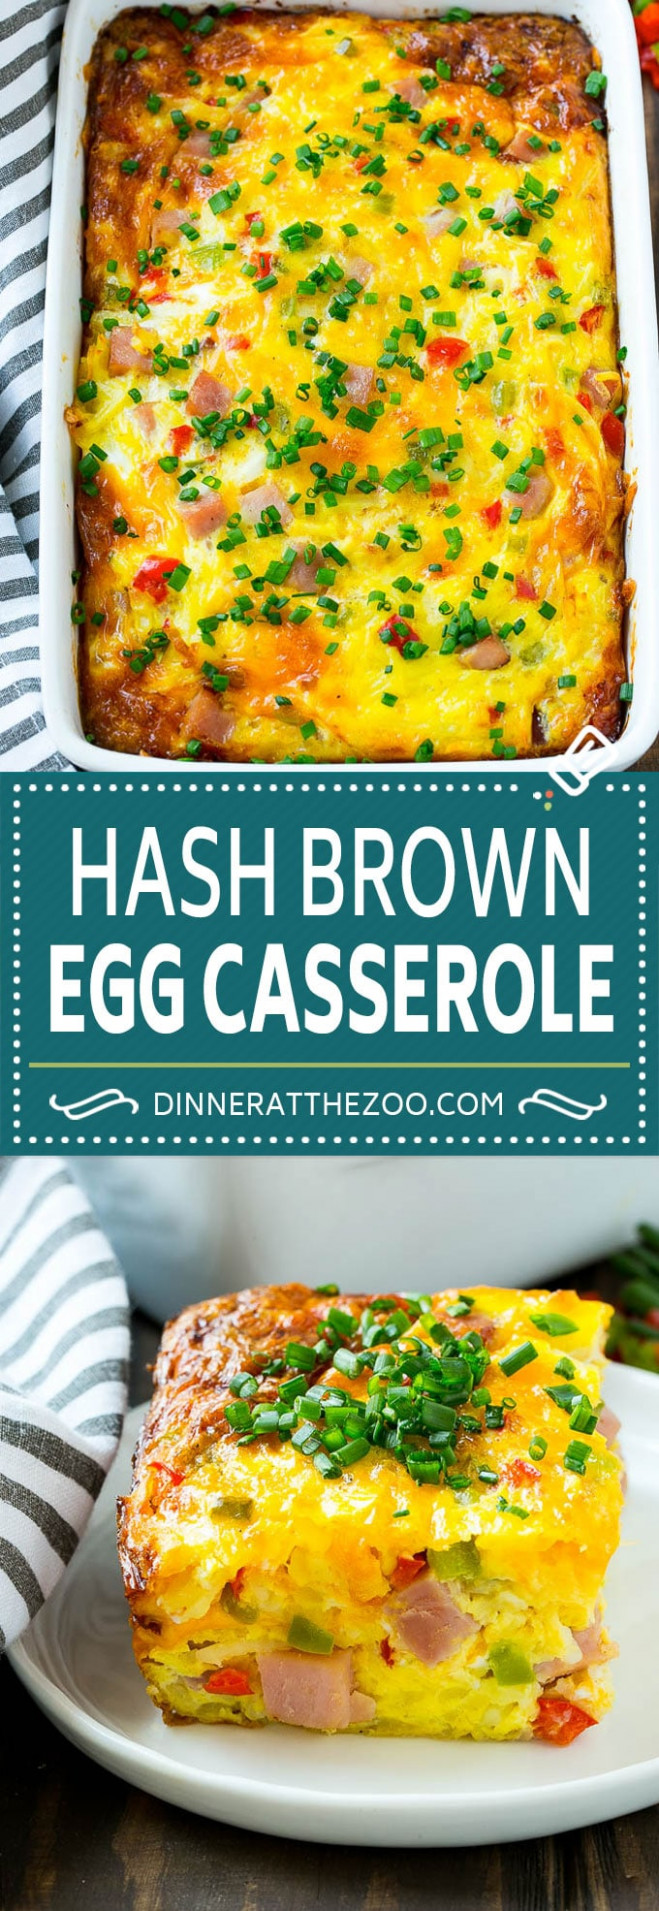 Hash Brown Egg Casserole - Dinner at the Zoo - dinner recipes using frozen hash browns